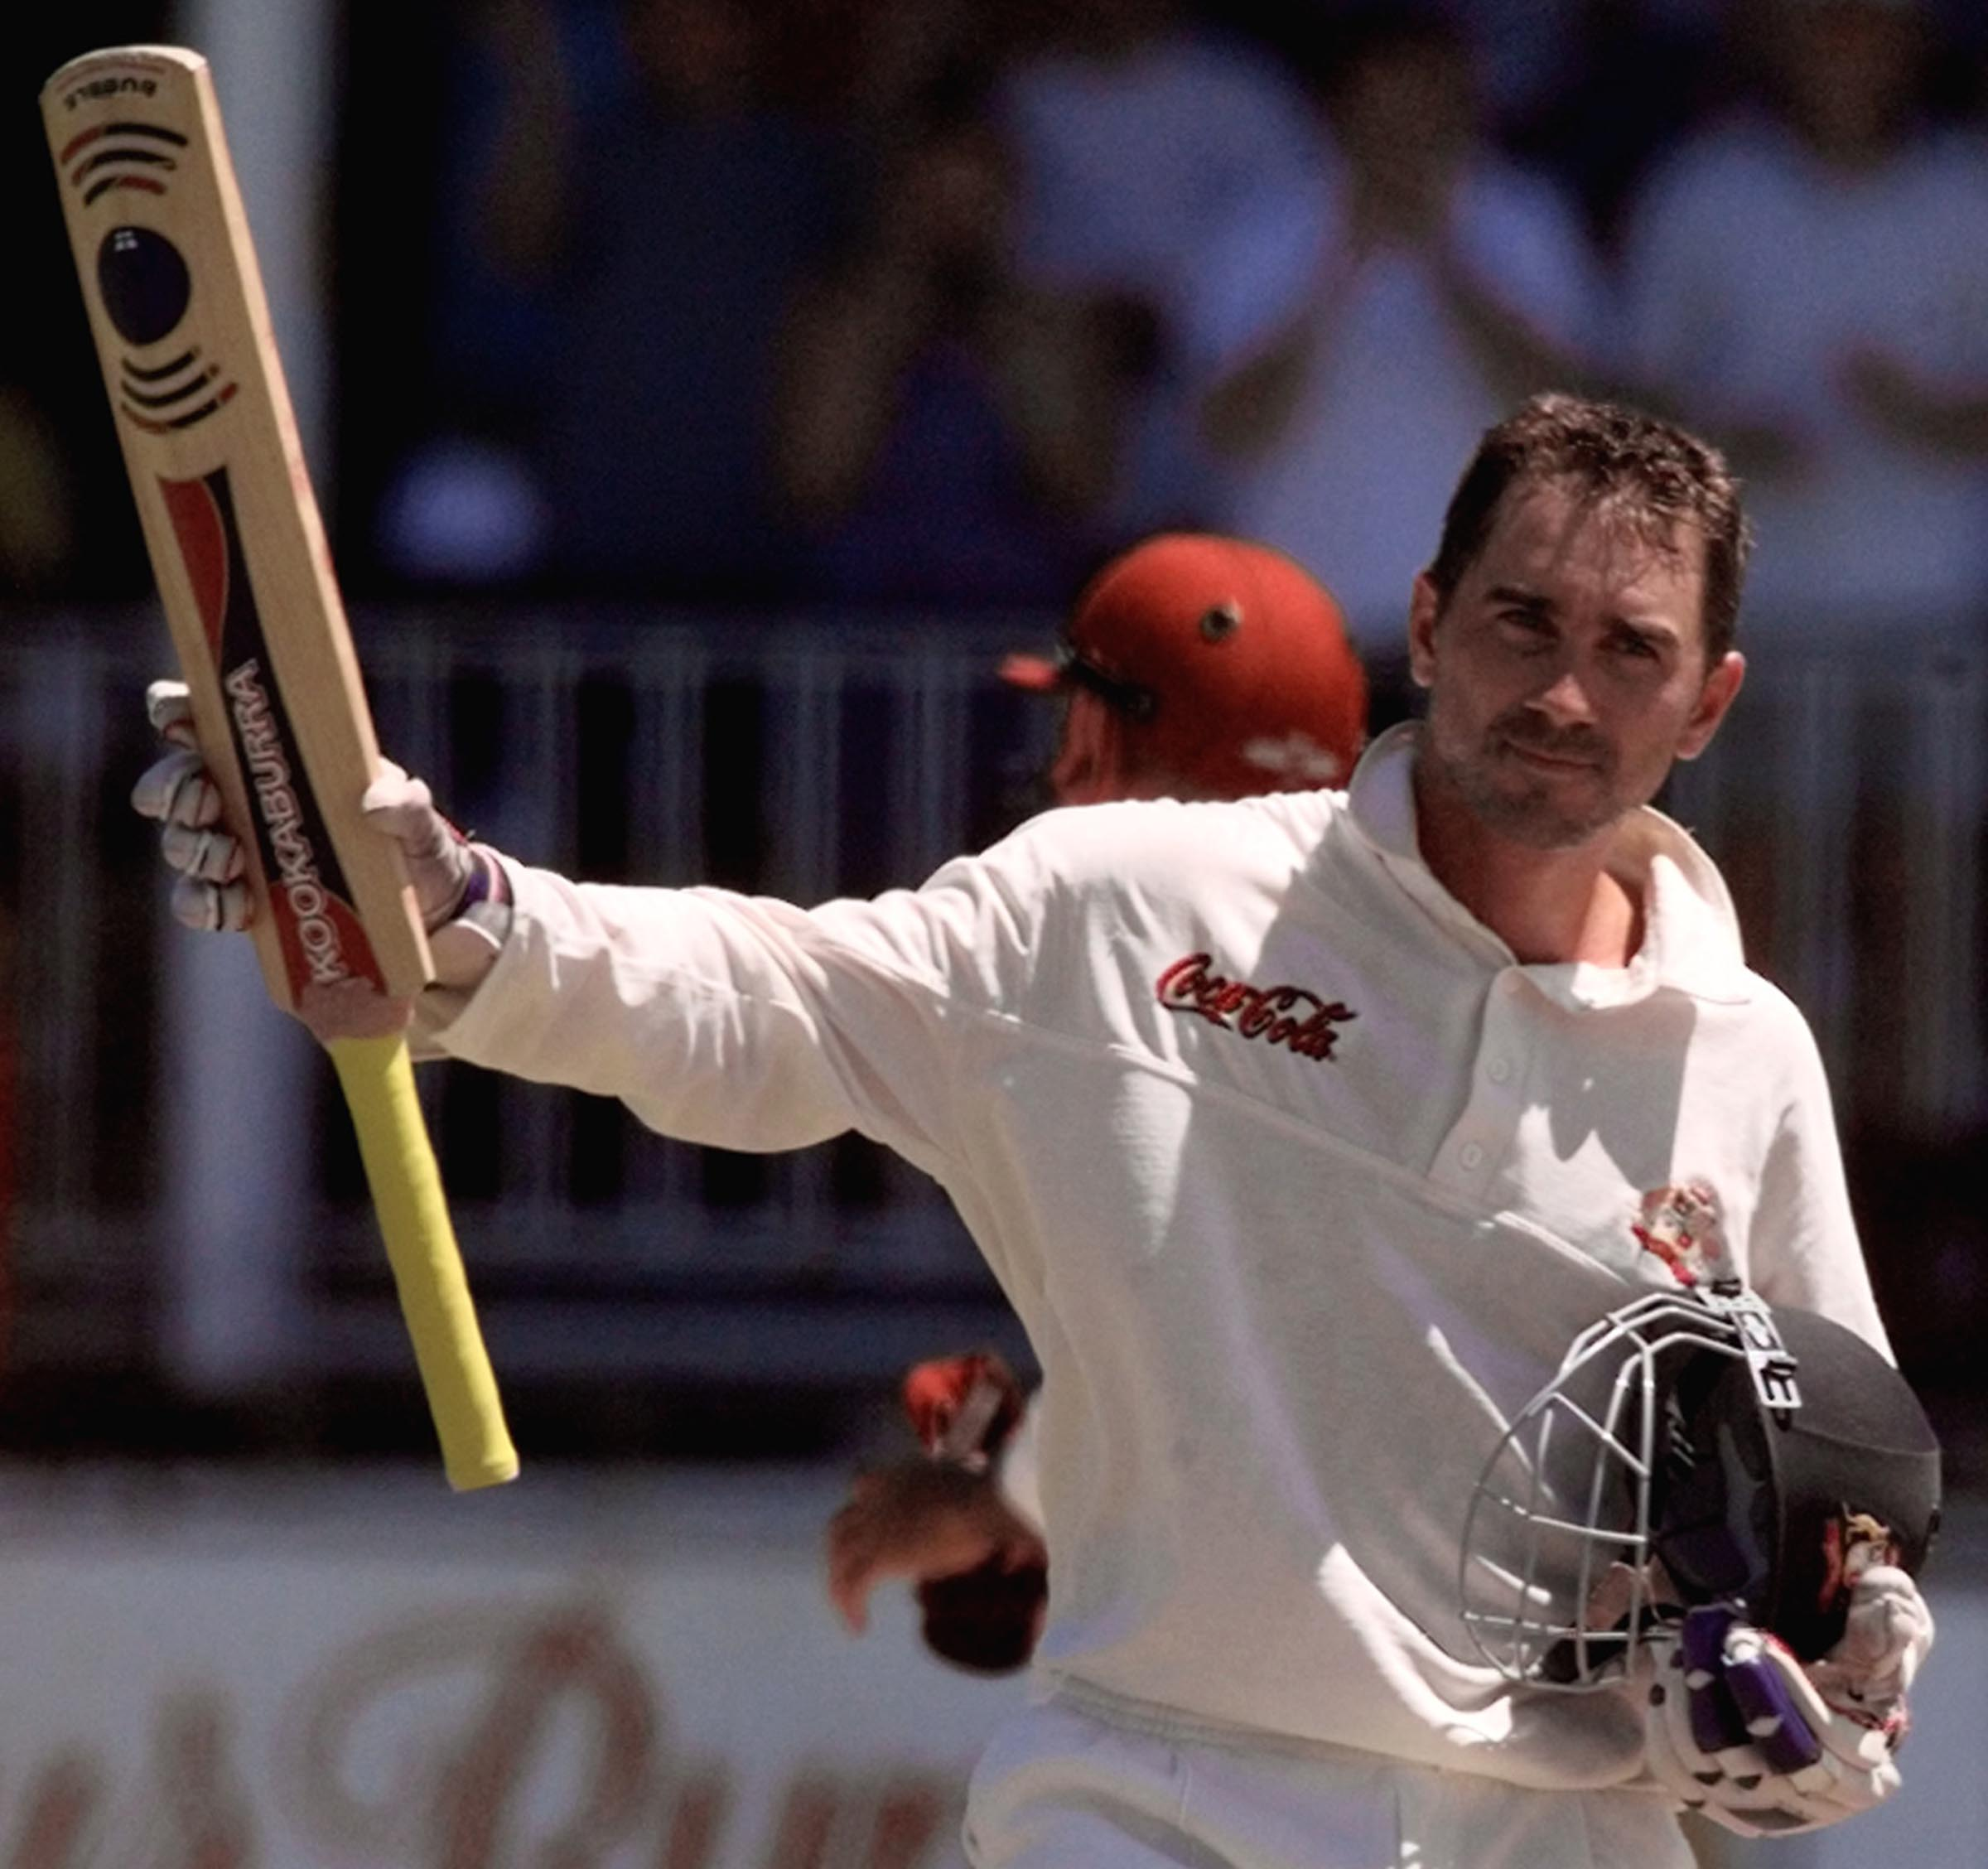 Justin Langer produced one of the most important innings of his career // Getty